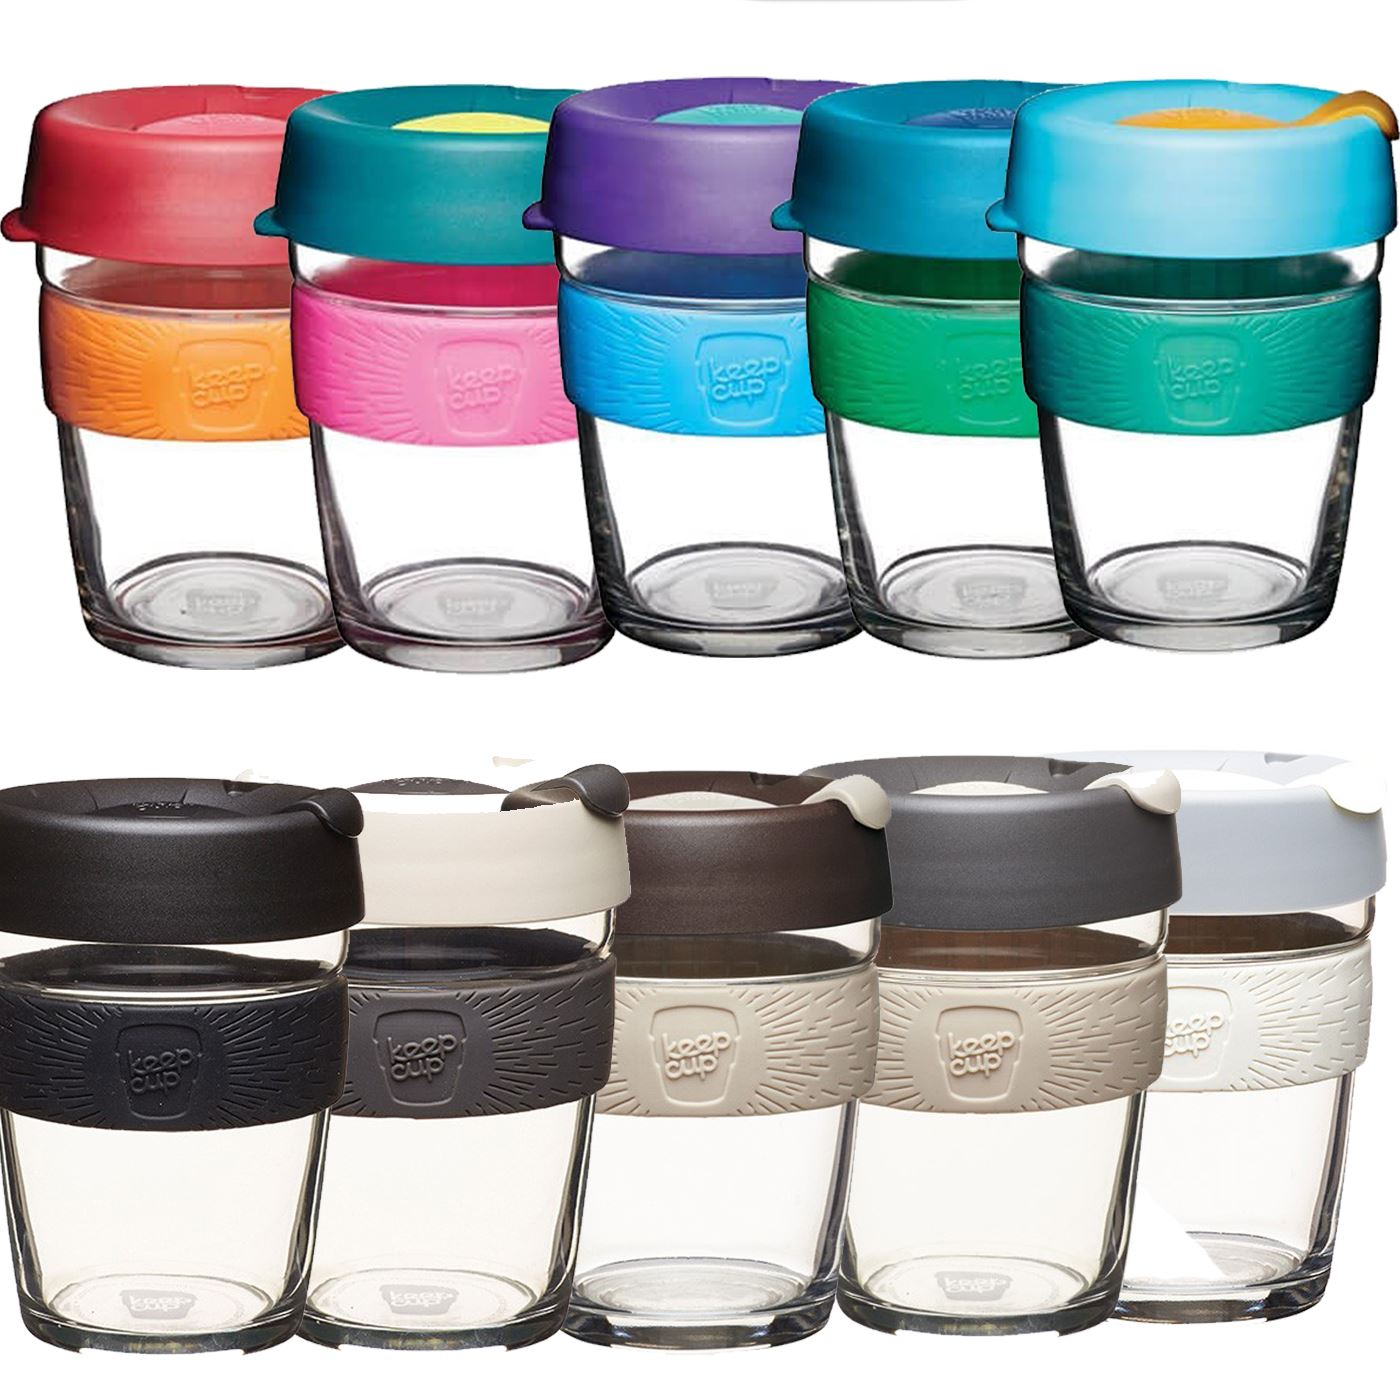 b75642ae107c Details about KeepCup Changemakers Brew Glass Edition Keep Cups Reusable  Travel Car Mug Glass